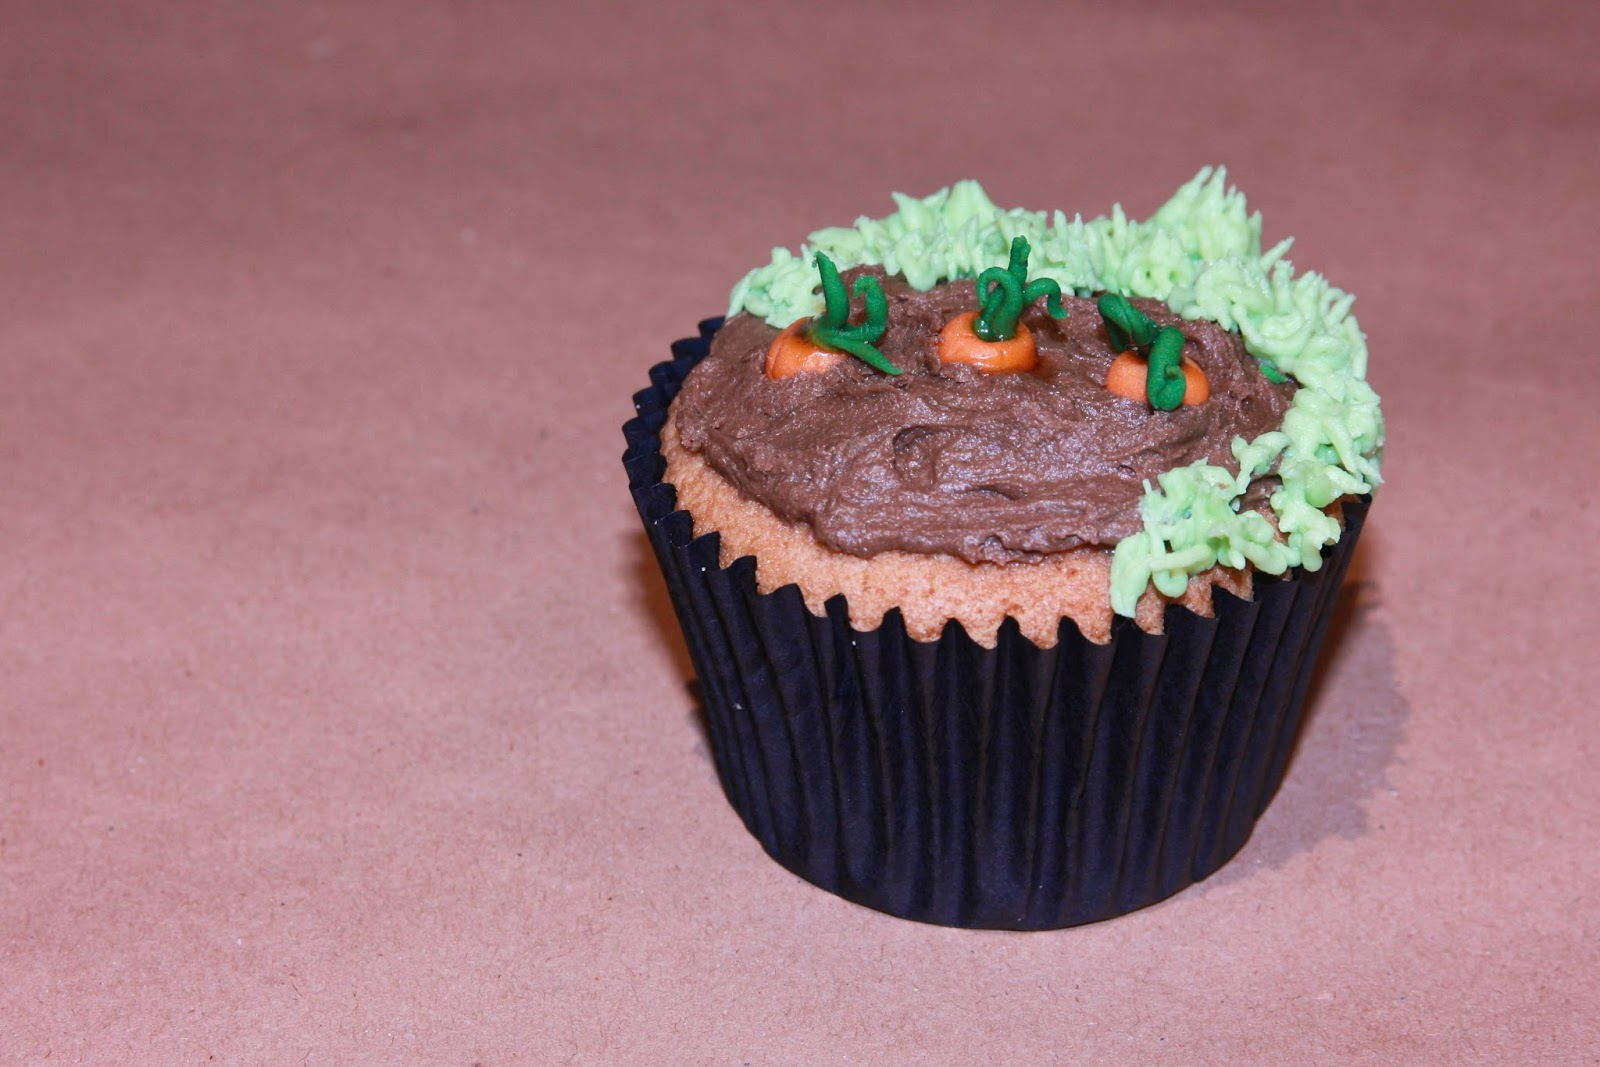 Earl Grey cupcake decorated with carrots growing in a vegetable patch